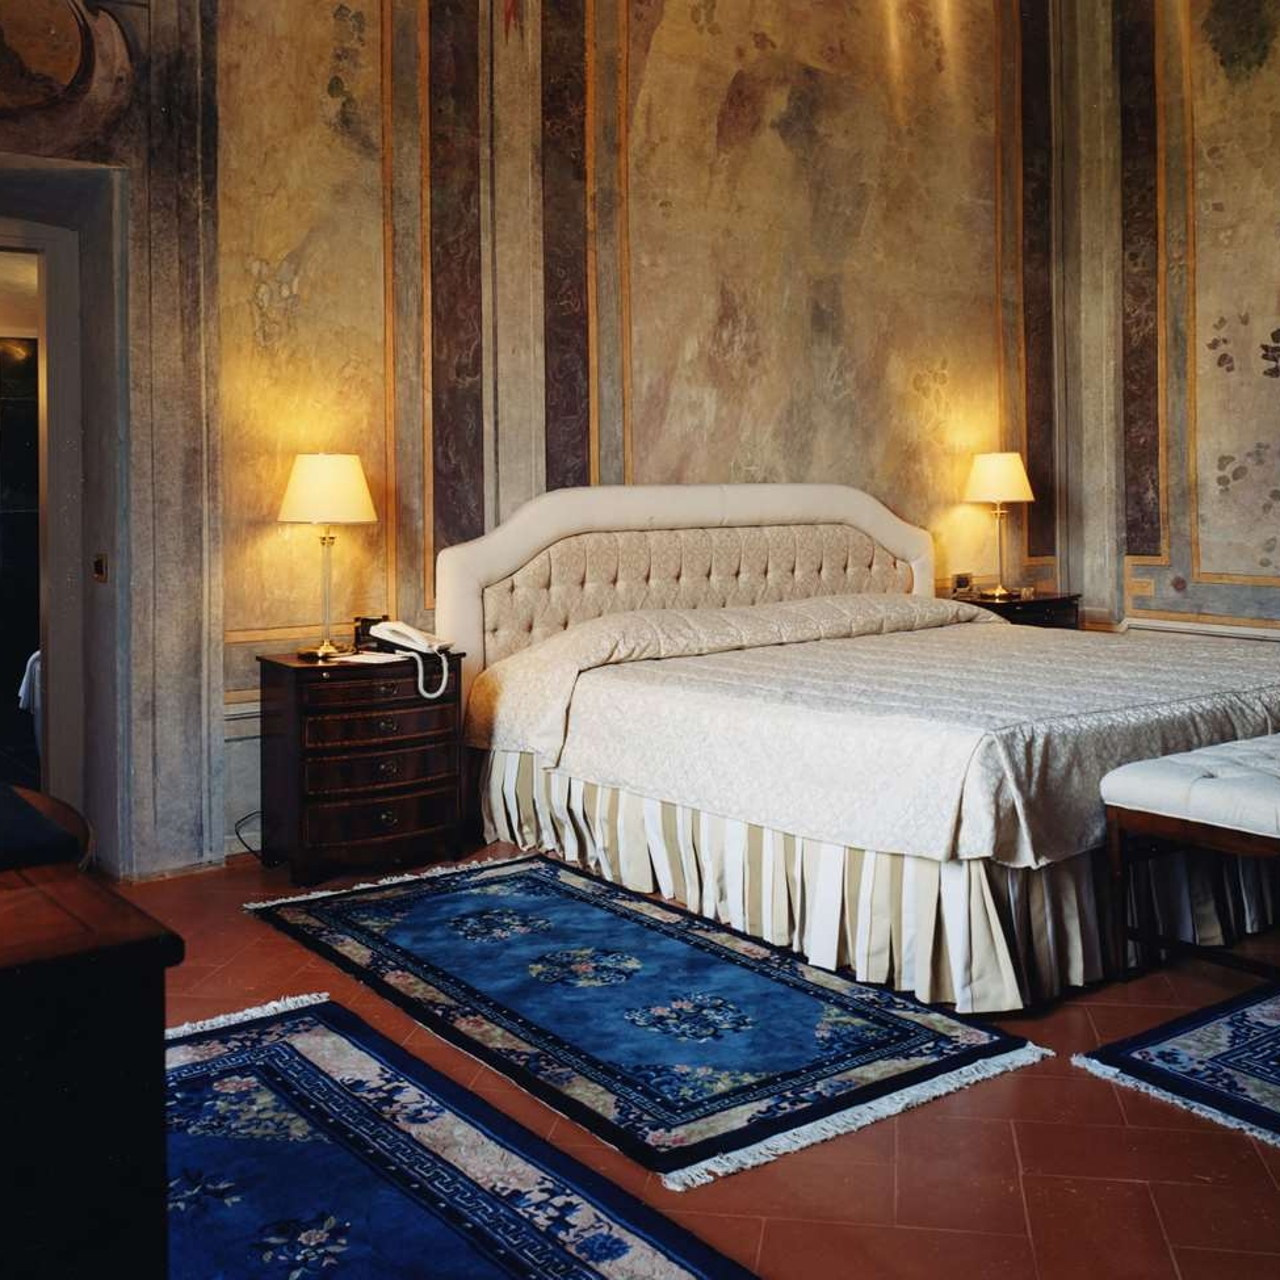 Grand Hotel Villa Torretta Milan Sesto Curio Collection Italy At Hrs With Free Services